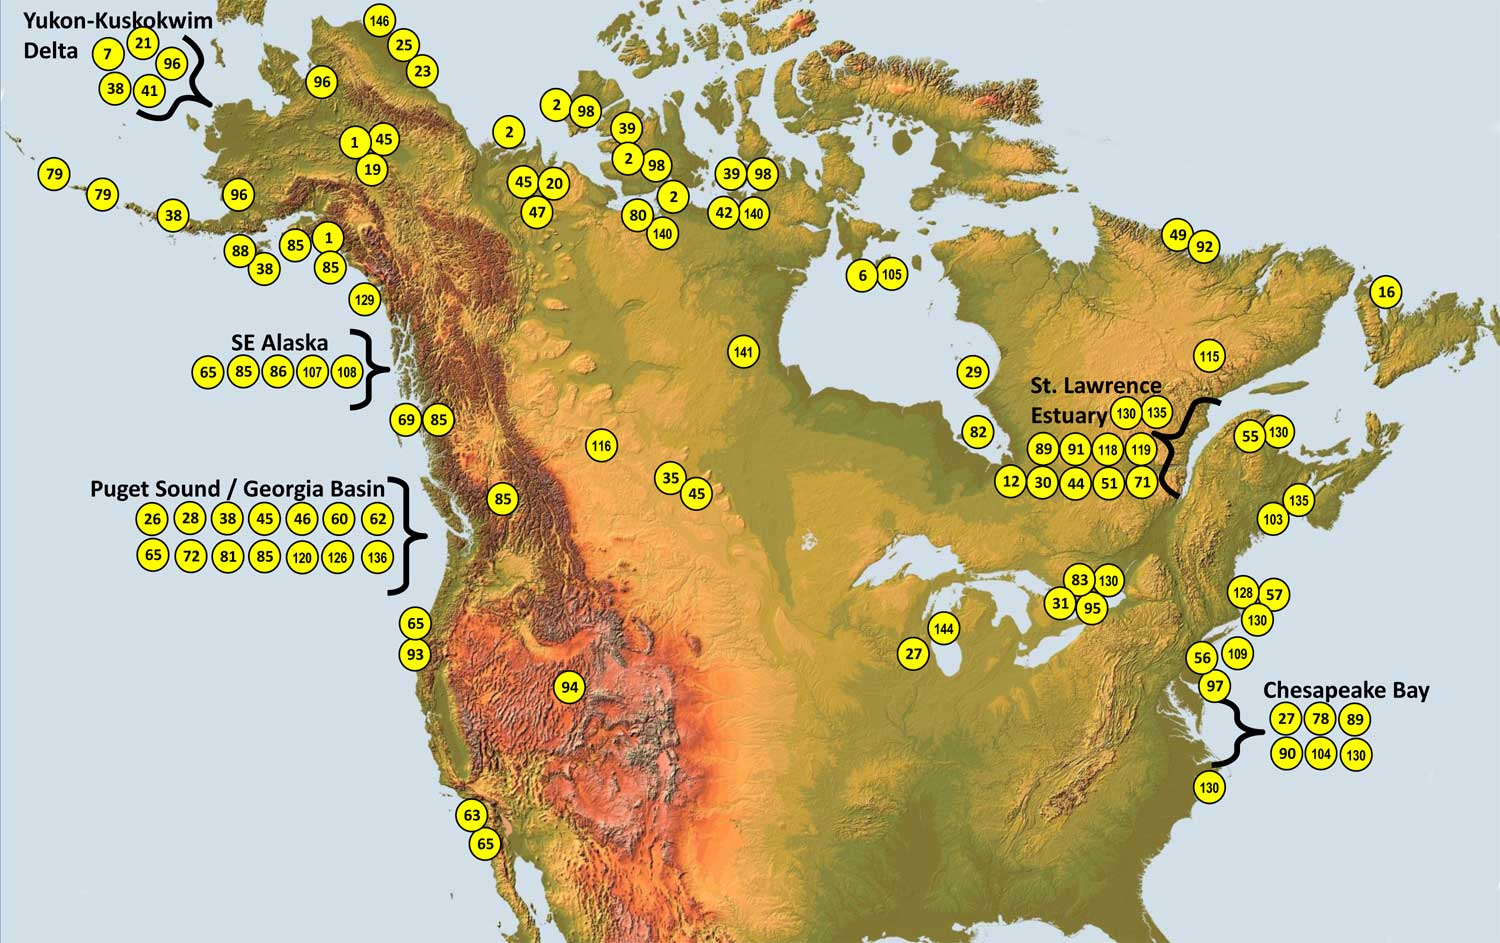 North american field projects funded by sdjv since 2001